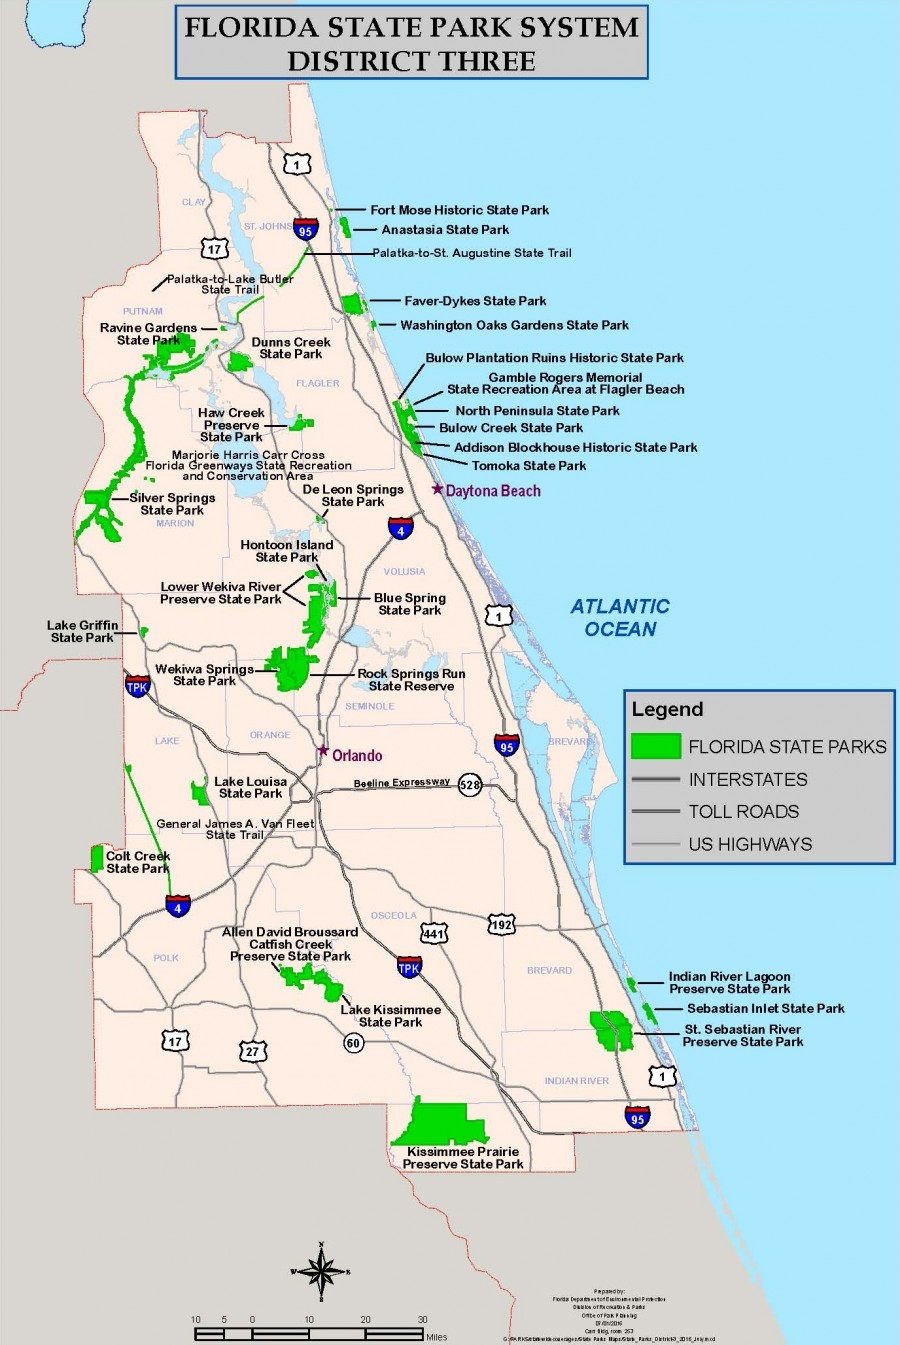 Flordia State Map.Florida Park Service District 3 Map Florida Department Of